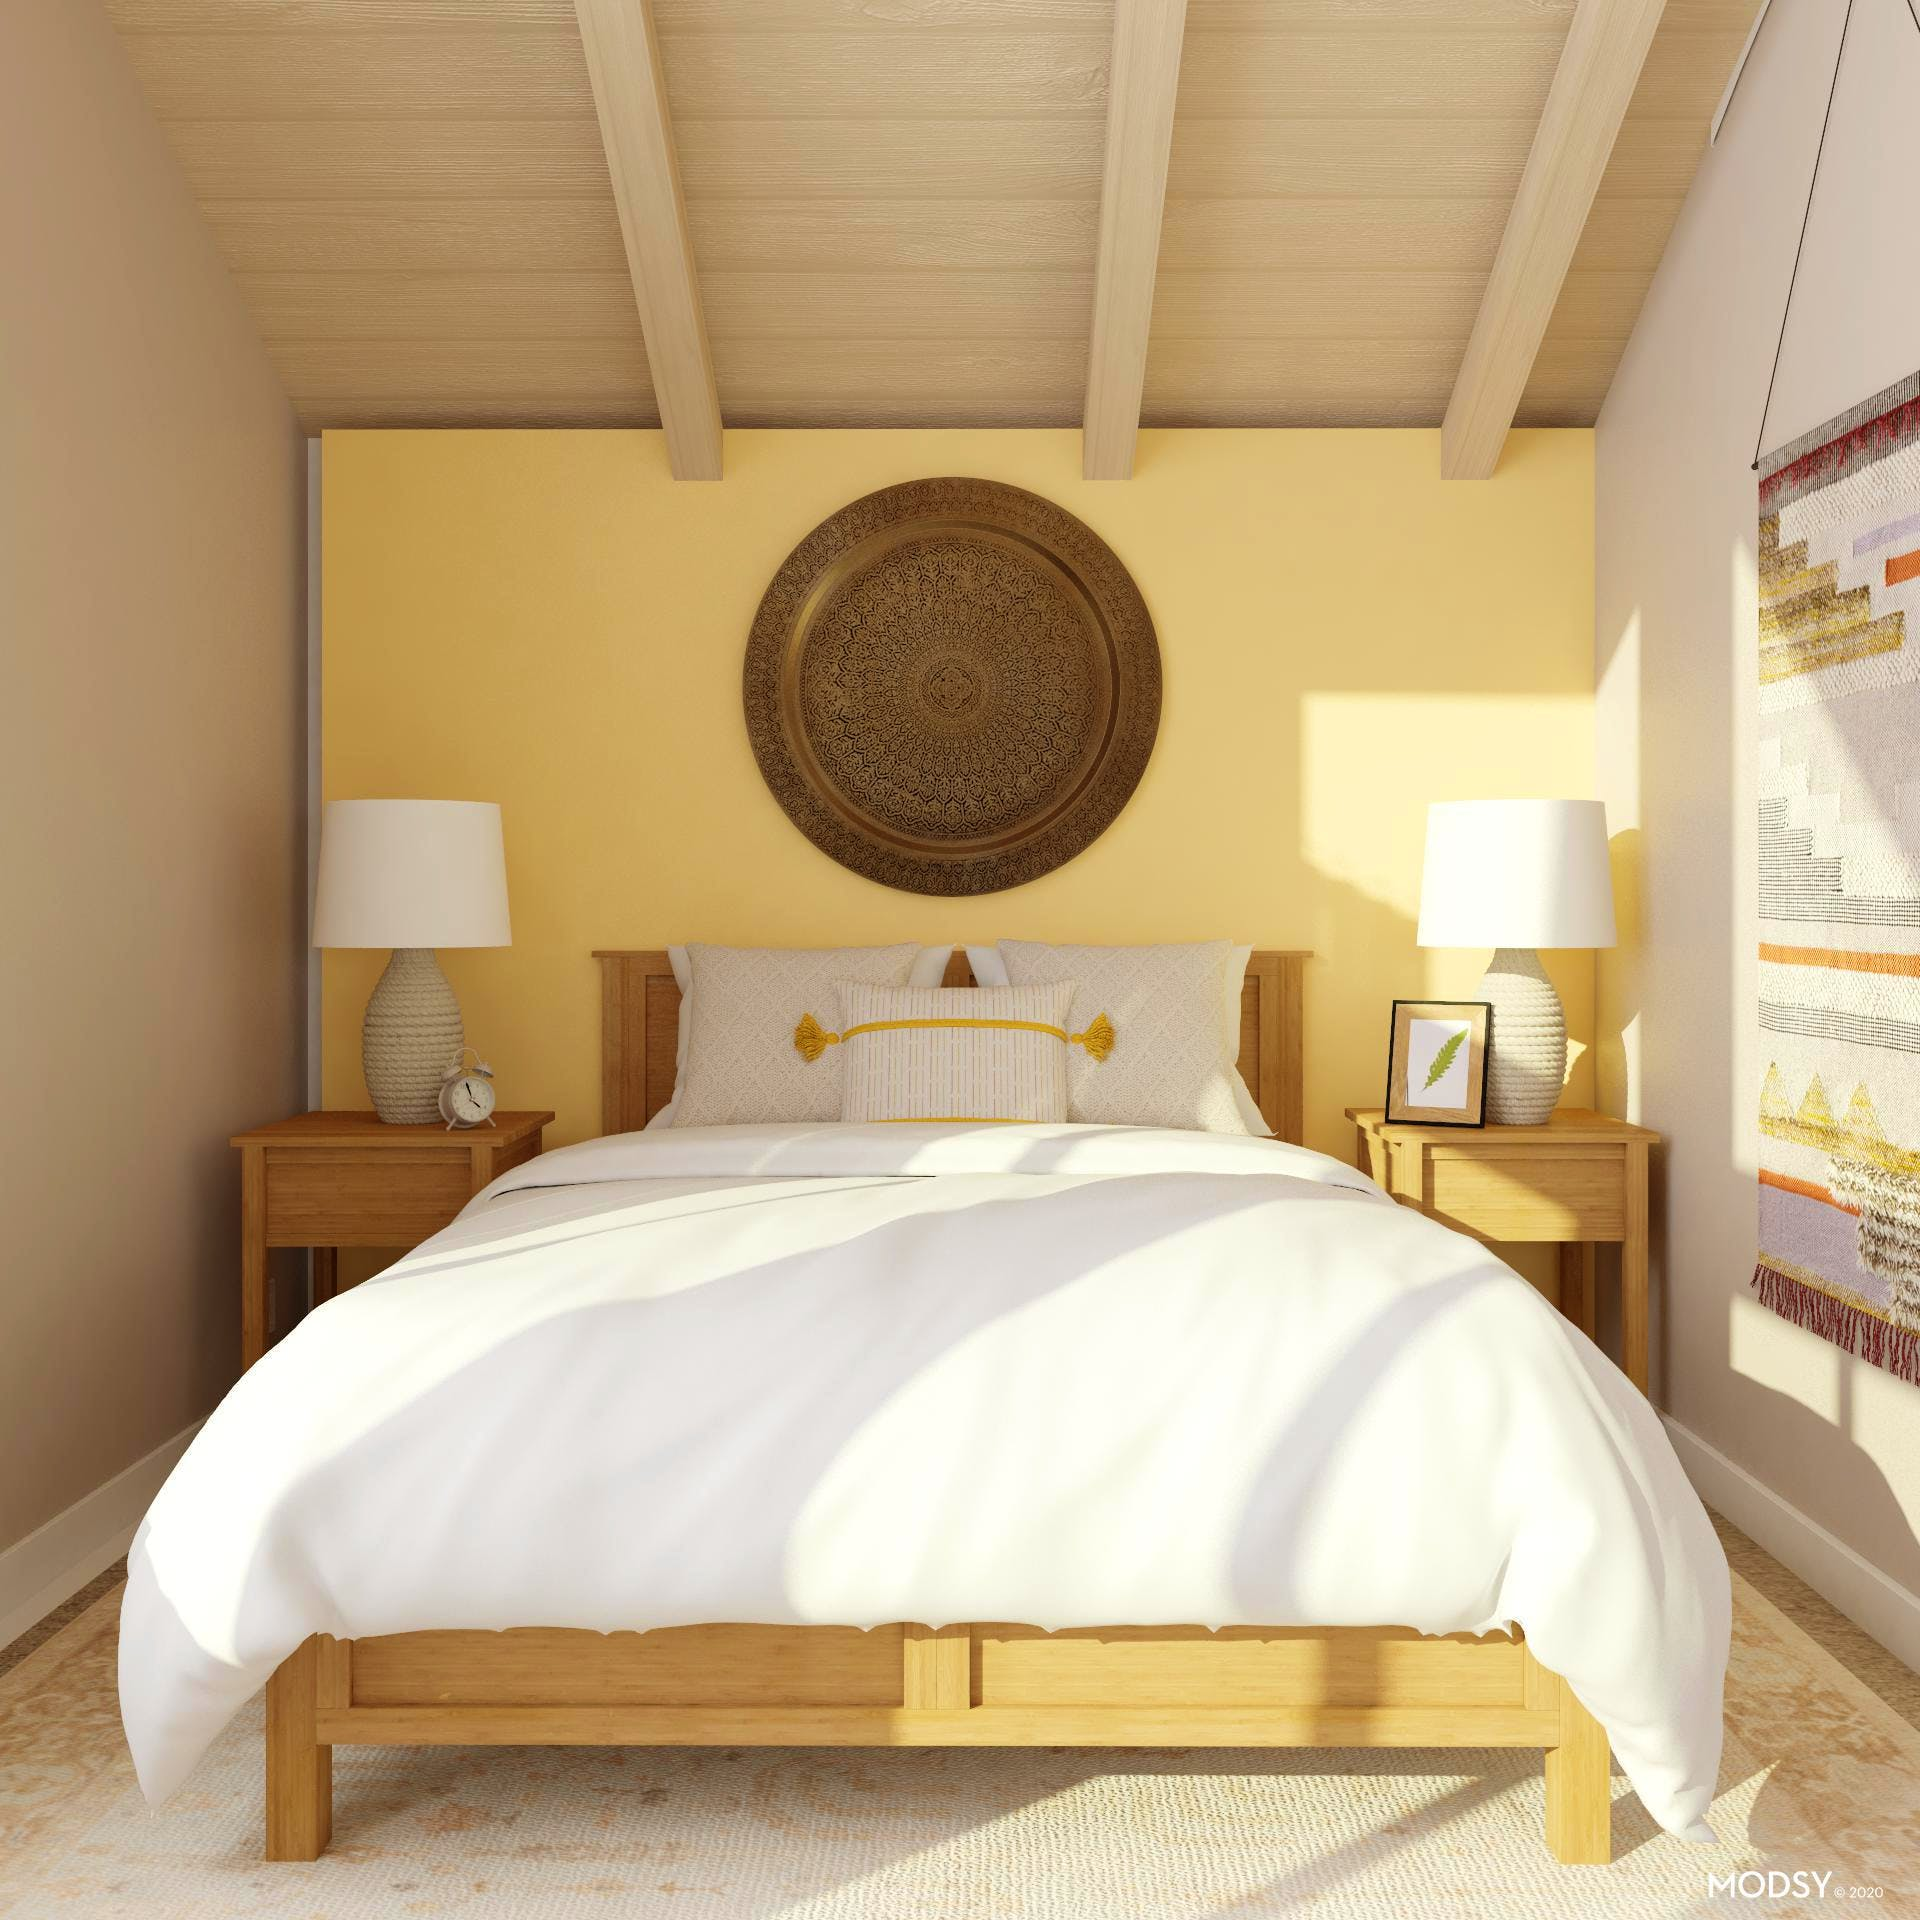 Stay on the Sunny Side Bedroom